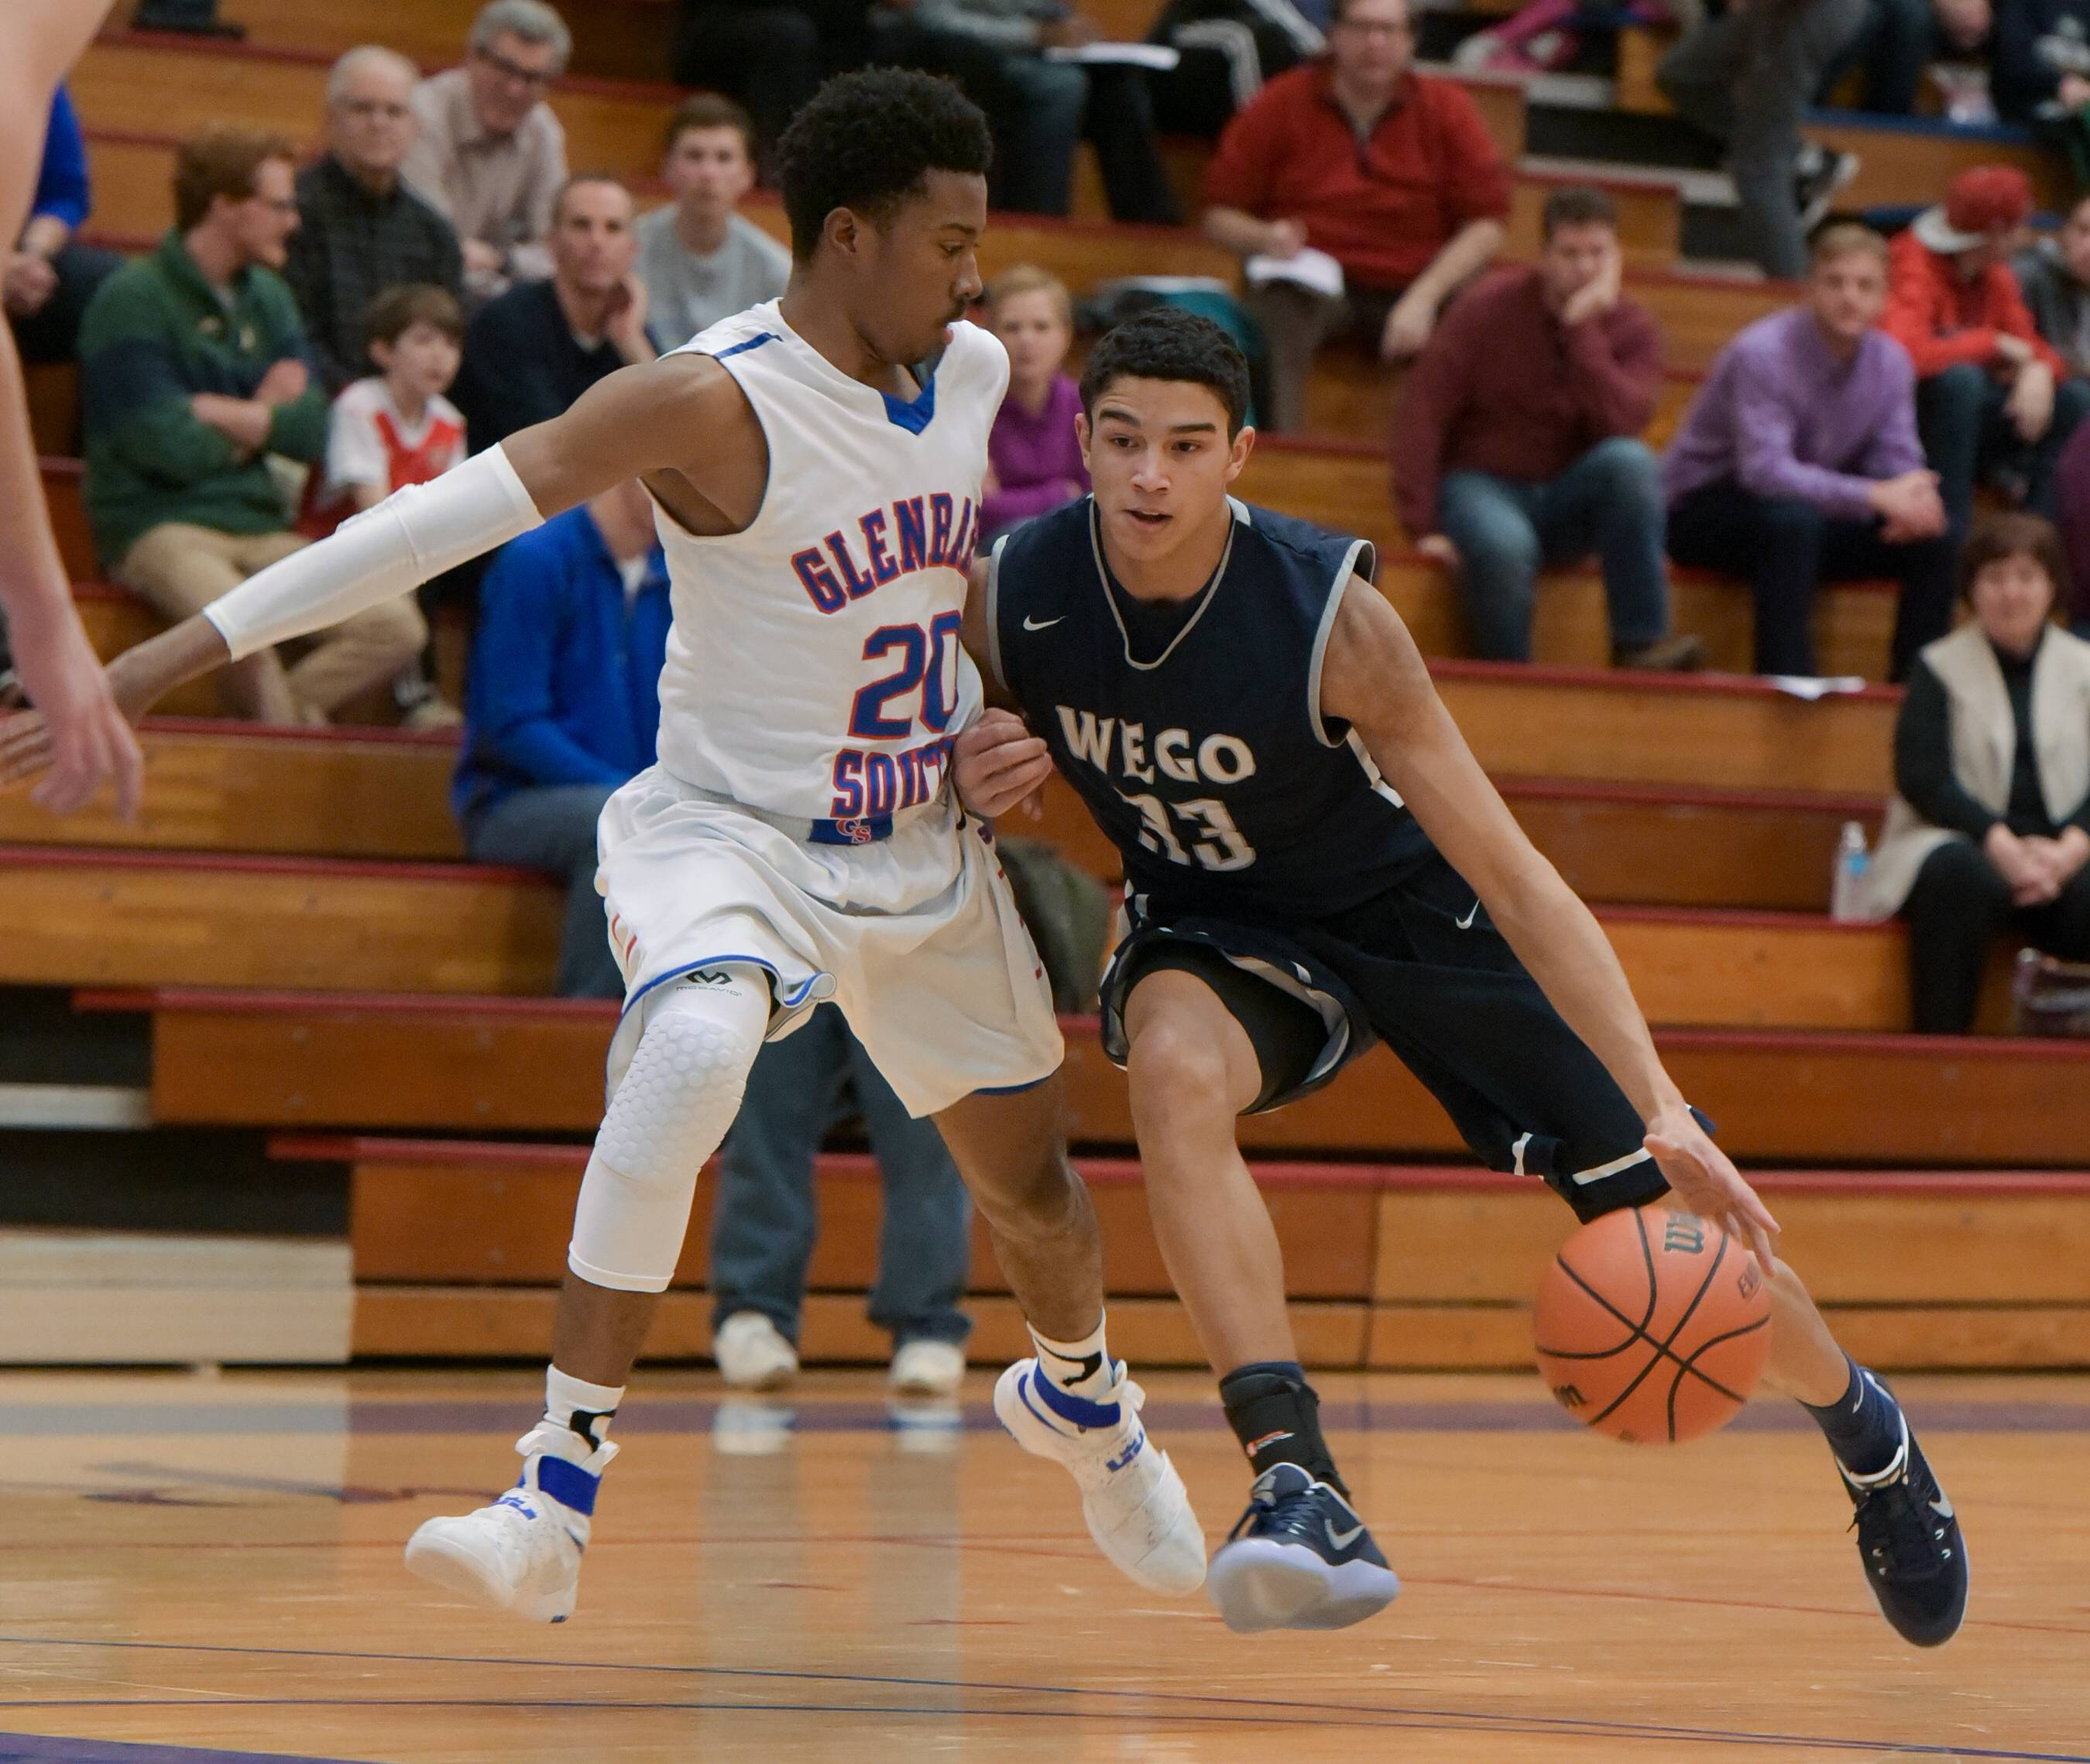 Images: West Chicago vs. Glenbard South boys basketball